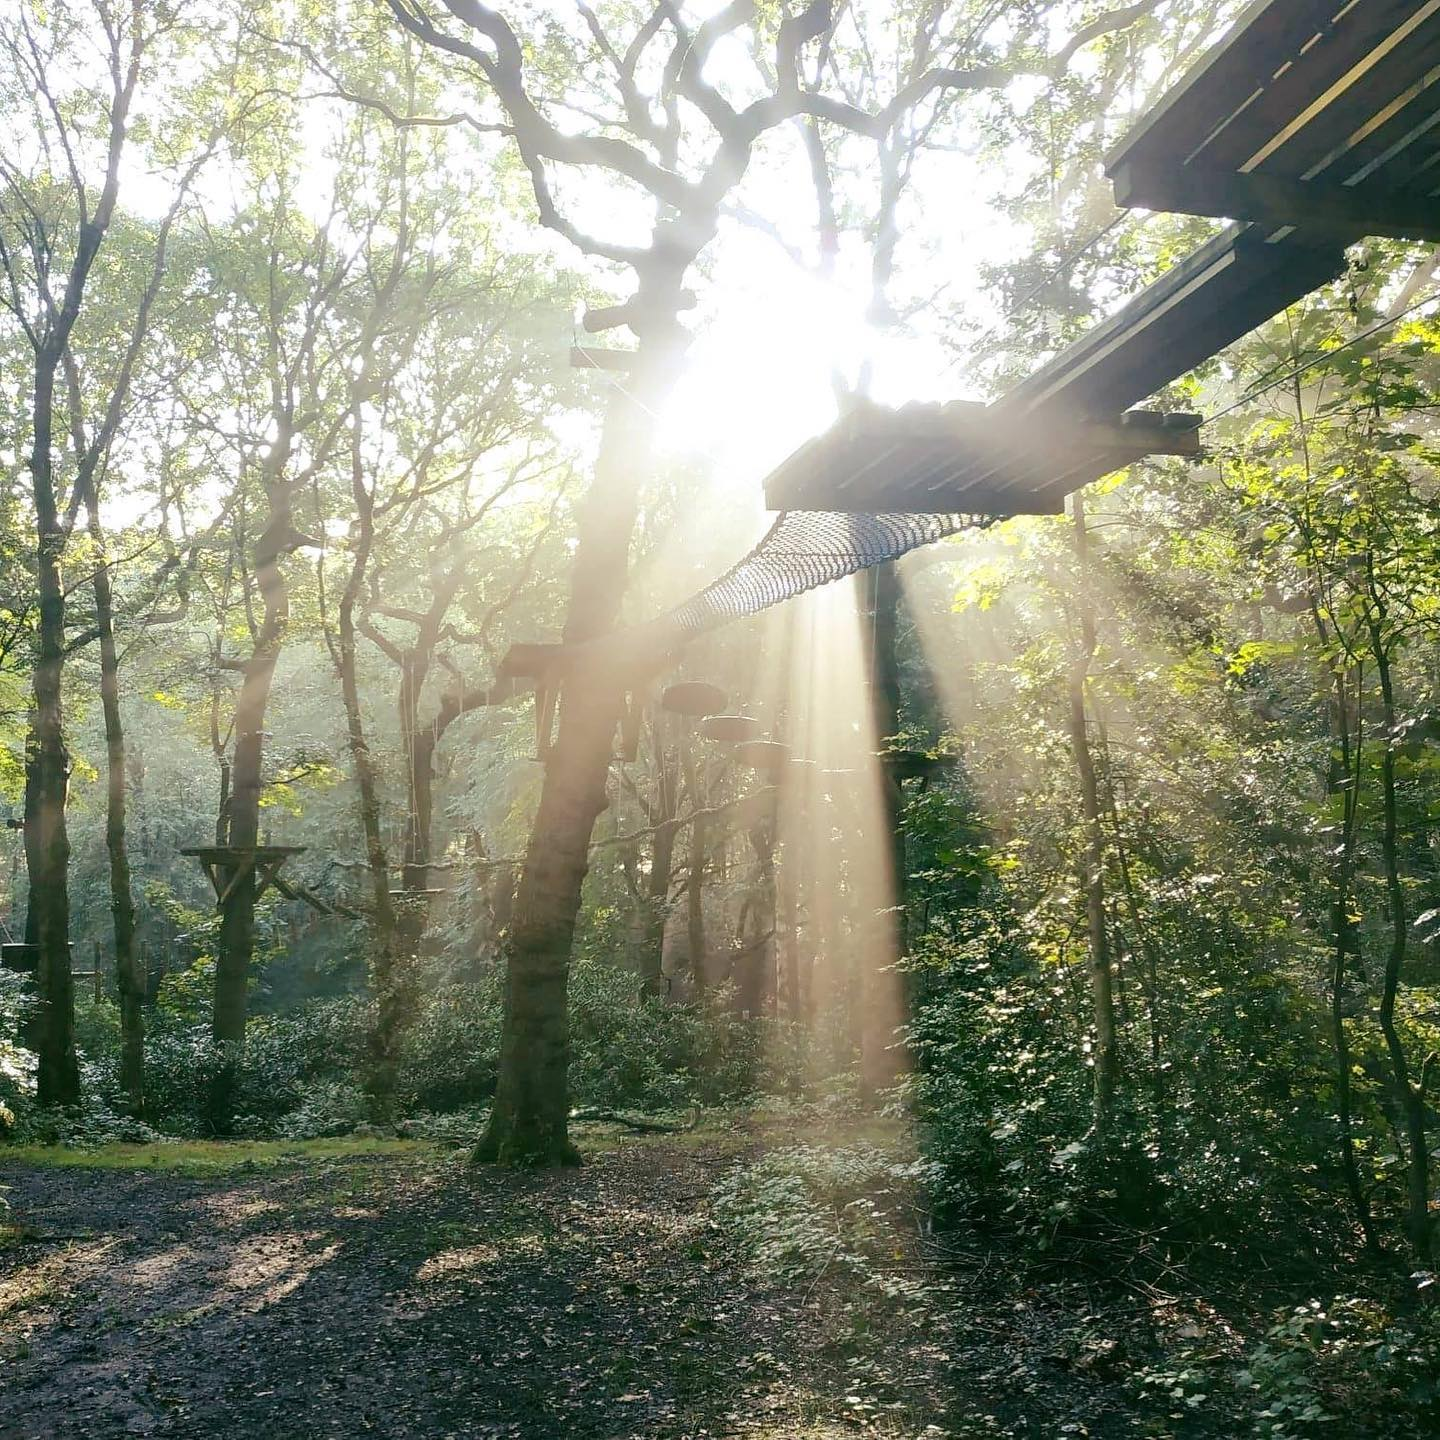 Things To Do With Kids in Manchester - Treetop Trek Manchester